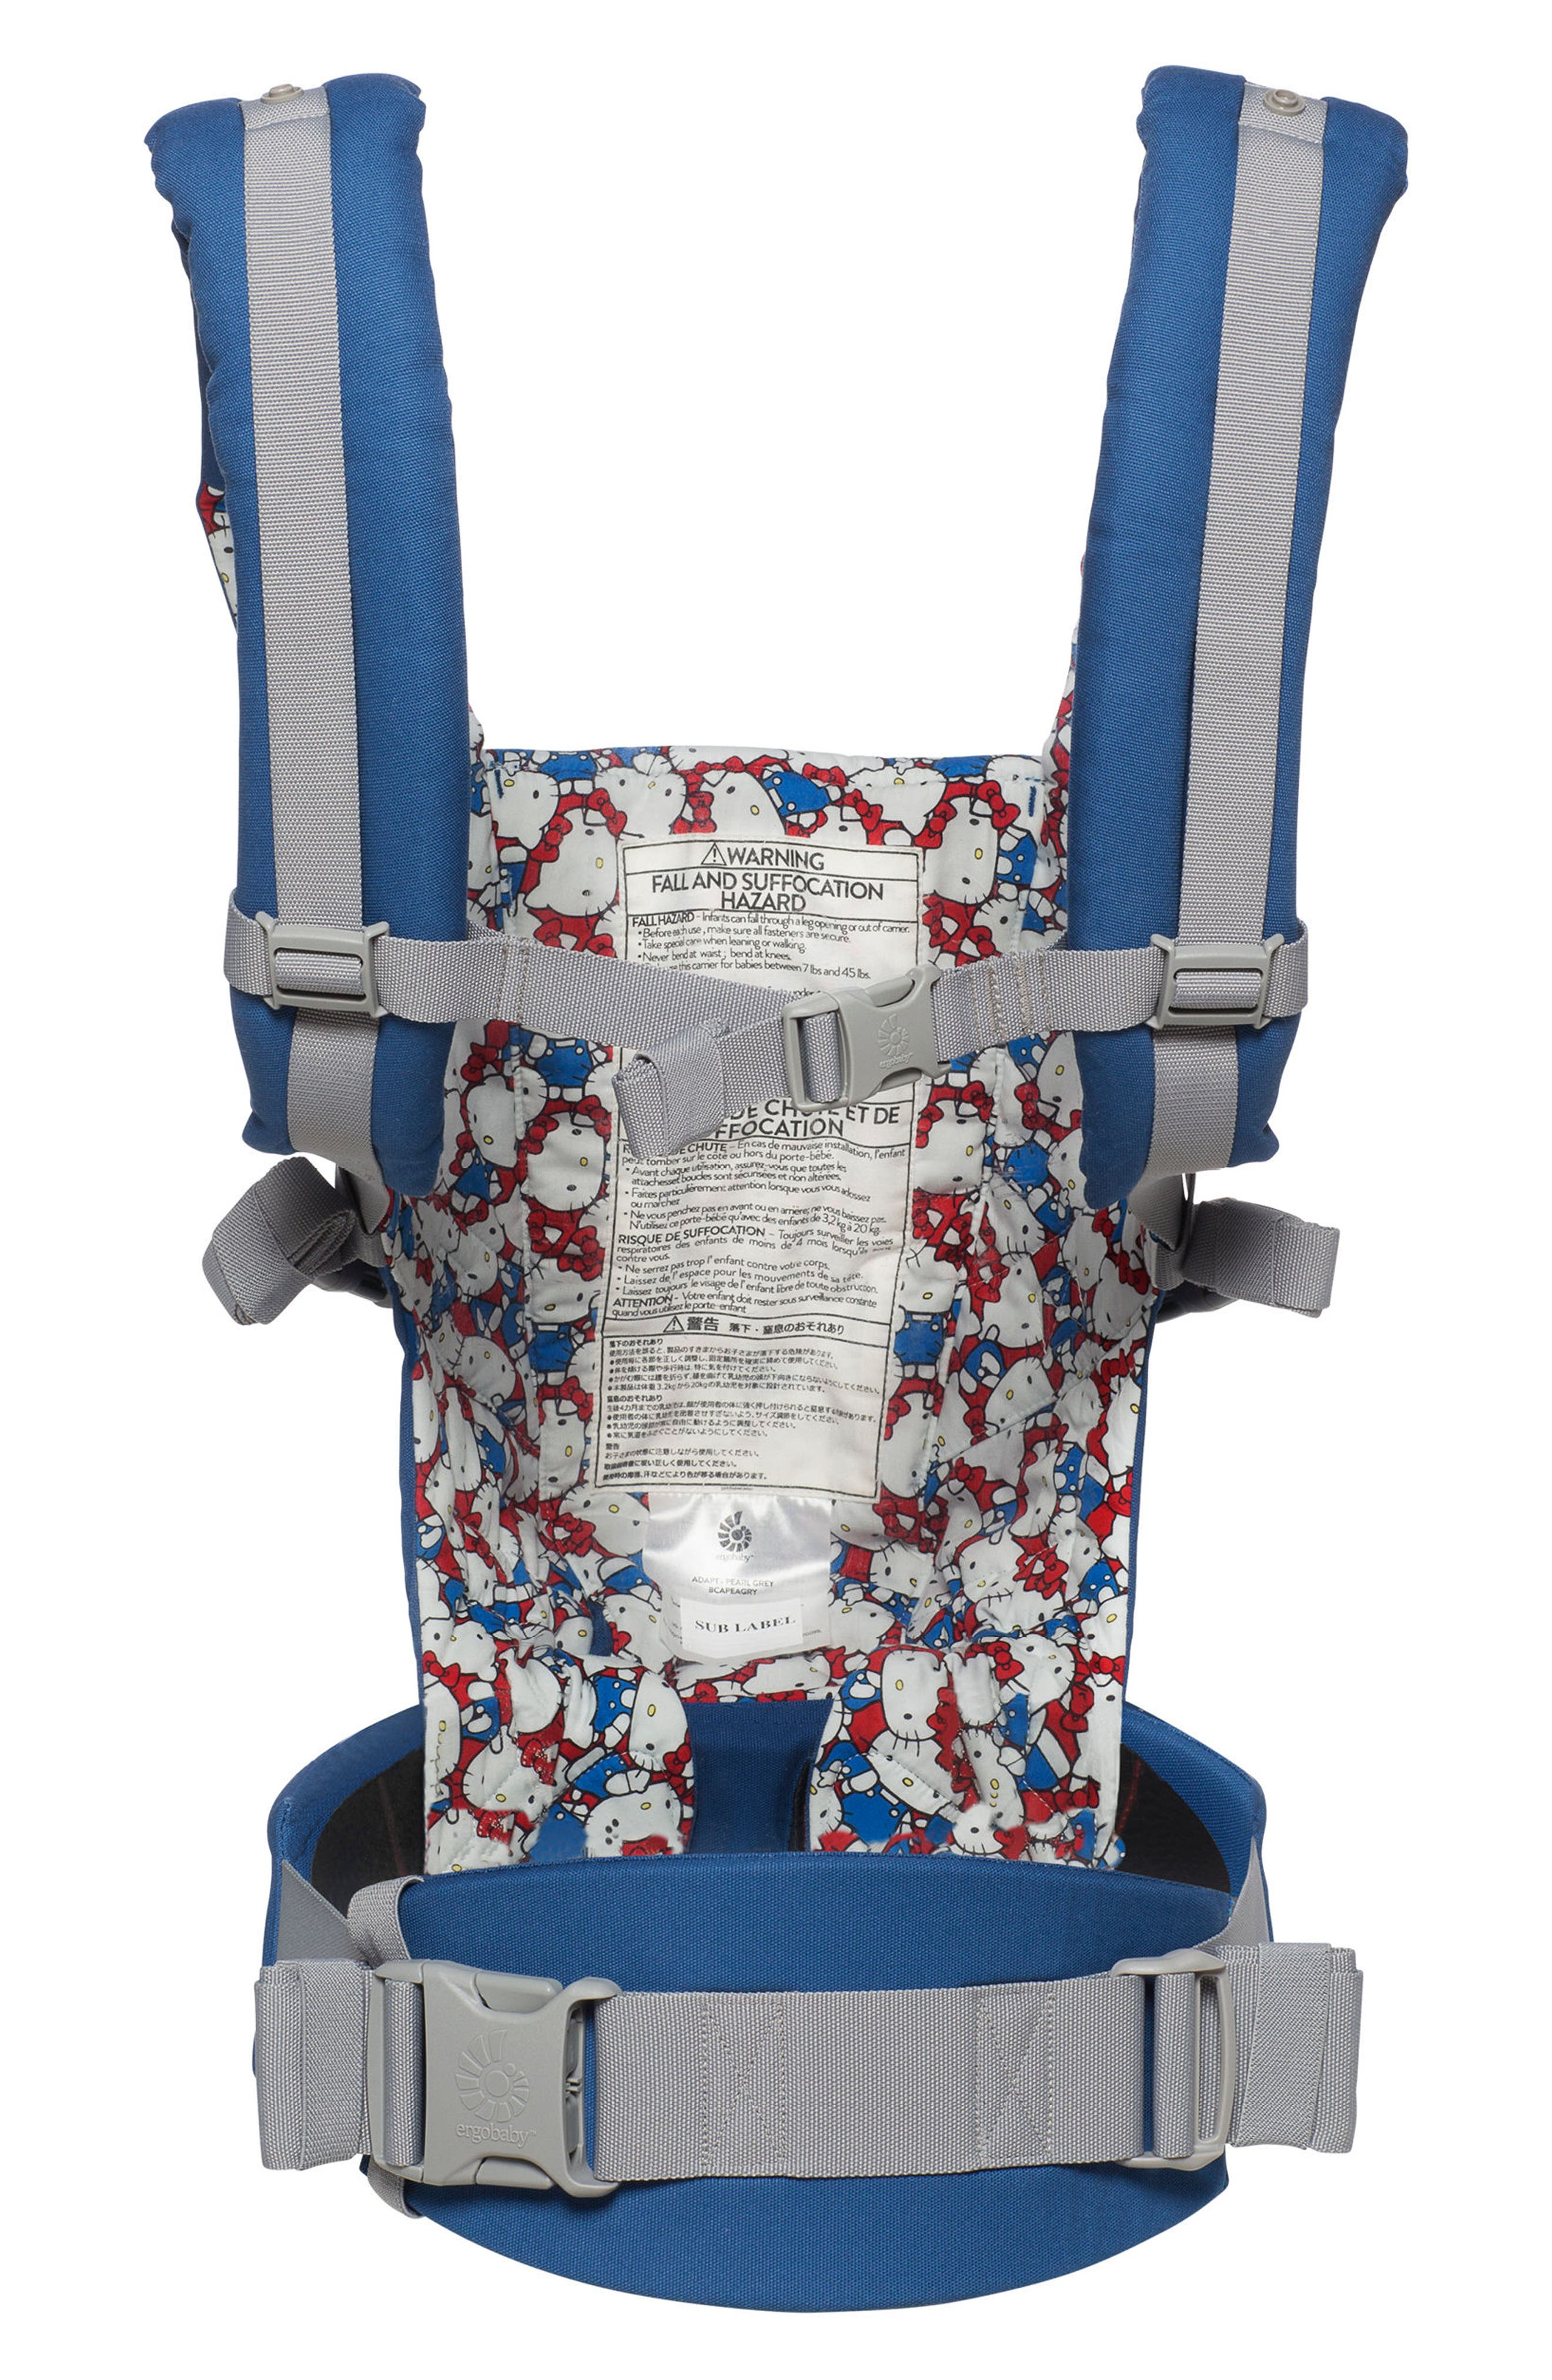 x Hello Kitty<sup>®</sup> Limited Edition Three Position ADAPT Baby Carrier,                             Alternate thumbnail 2, color,                             400